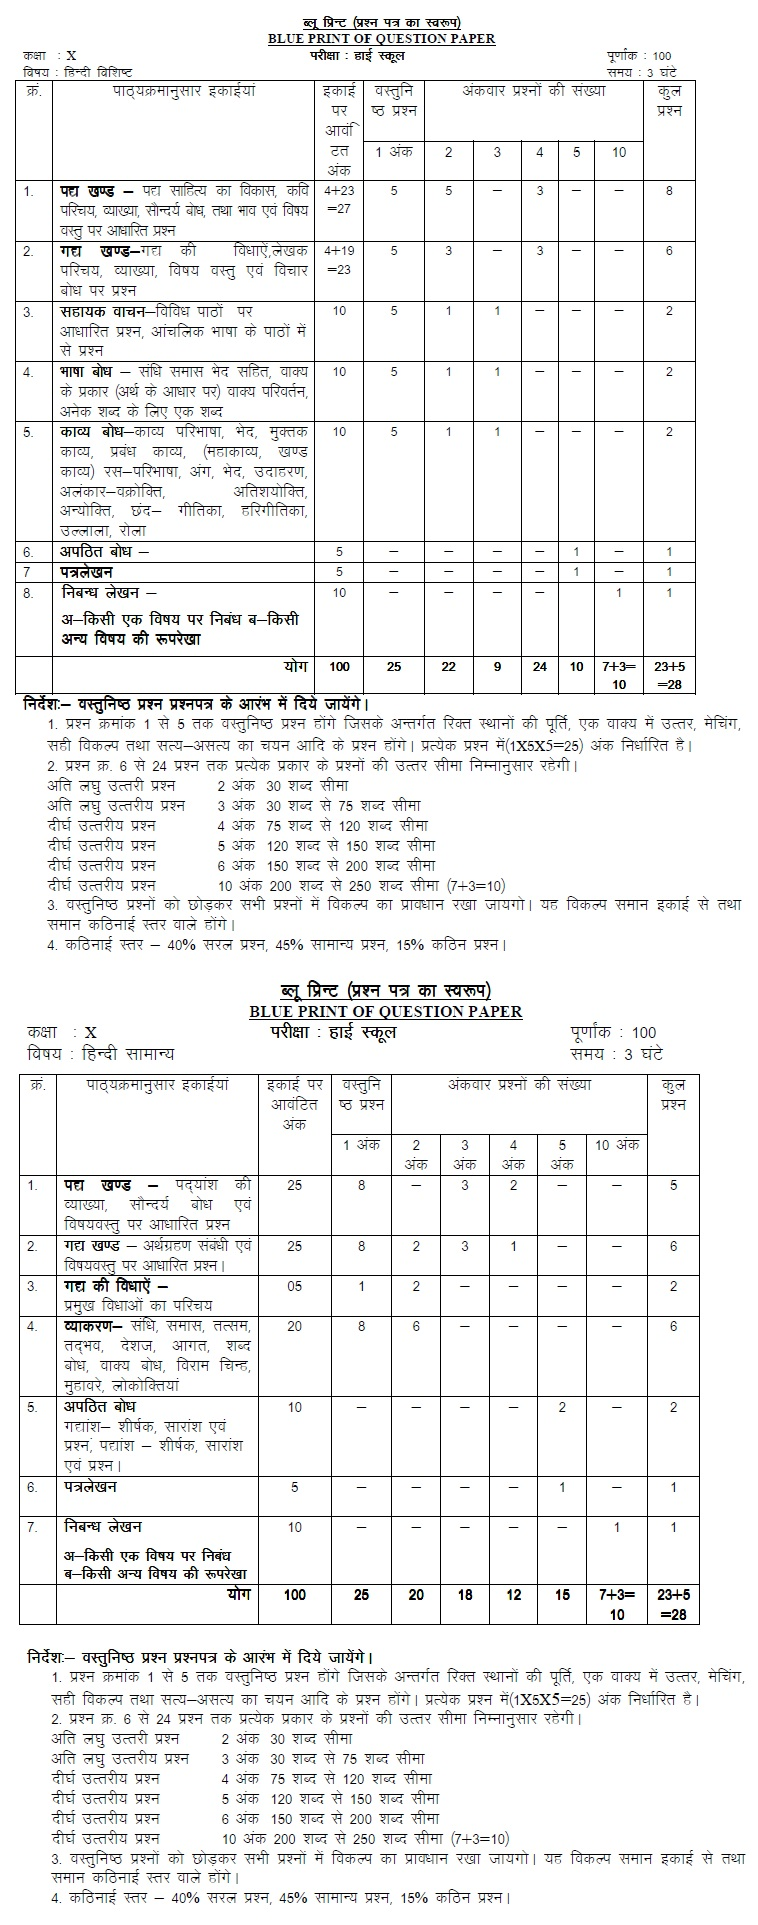 Mp board blue print of class x hindi question paper 2014 aglasem mp board blue print of class x hindi question paper 2014 malvernweather